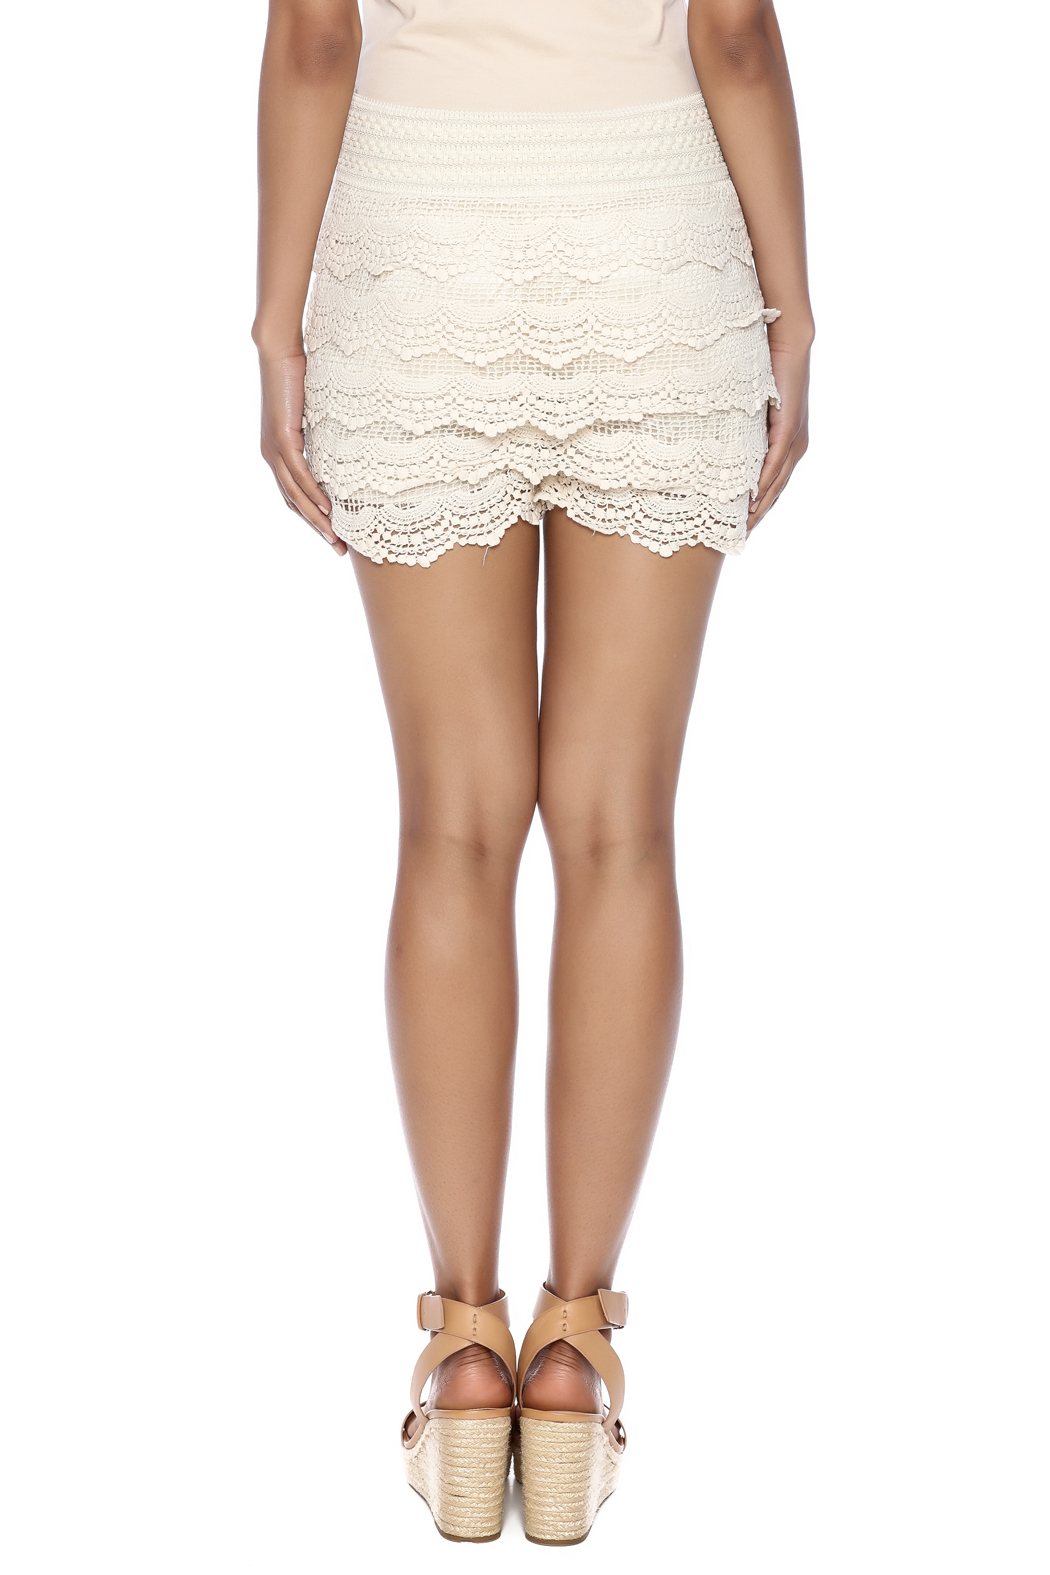 India Boutique Crochet Short - Back Cropped Image